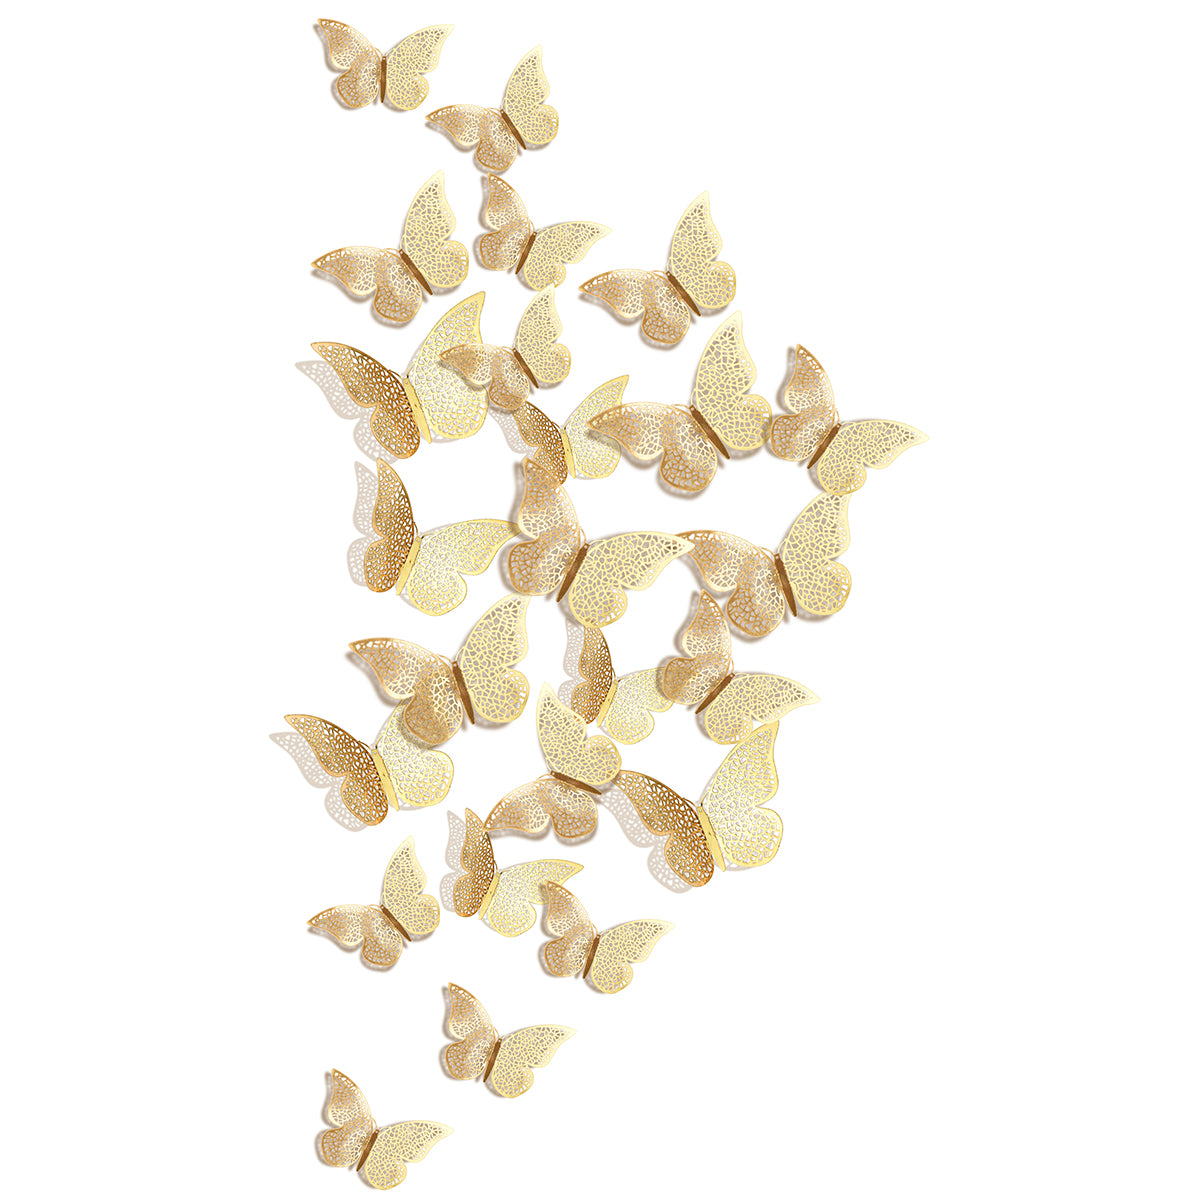 24 pieces of gold metallic butterflies with white background. The butterflies consist of 8 larges, 8 mediums, and 8 smalls